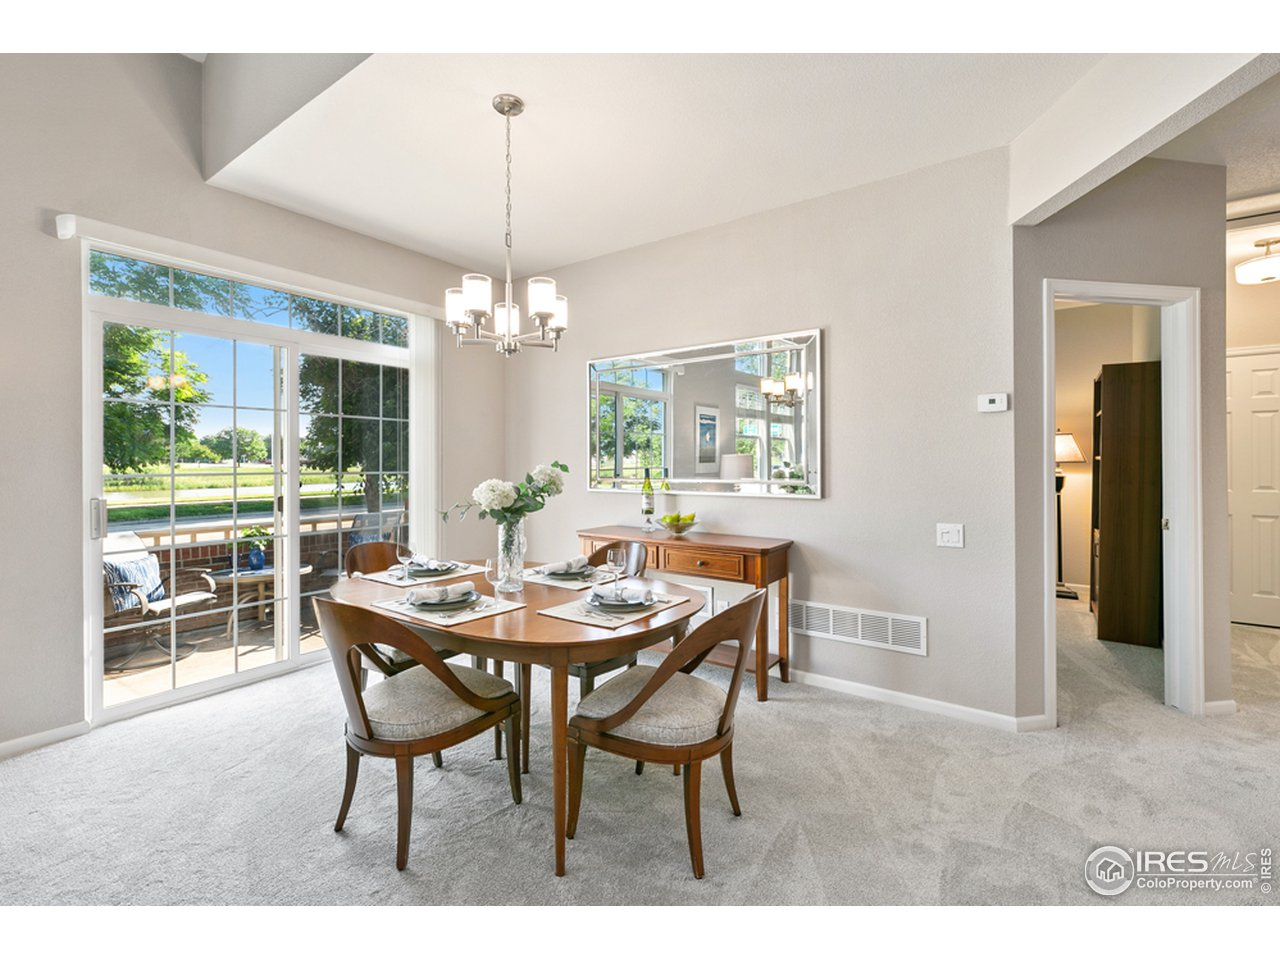 Dining Room with Sliding Doors to enclosed patio overlooking the park.